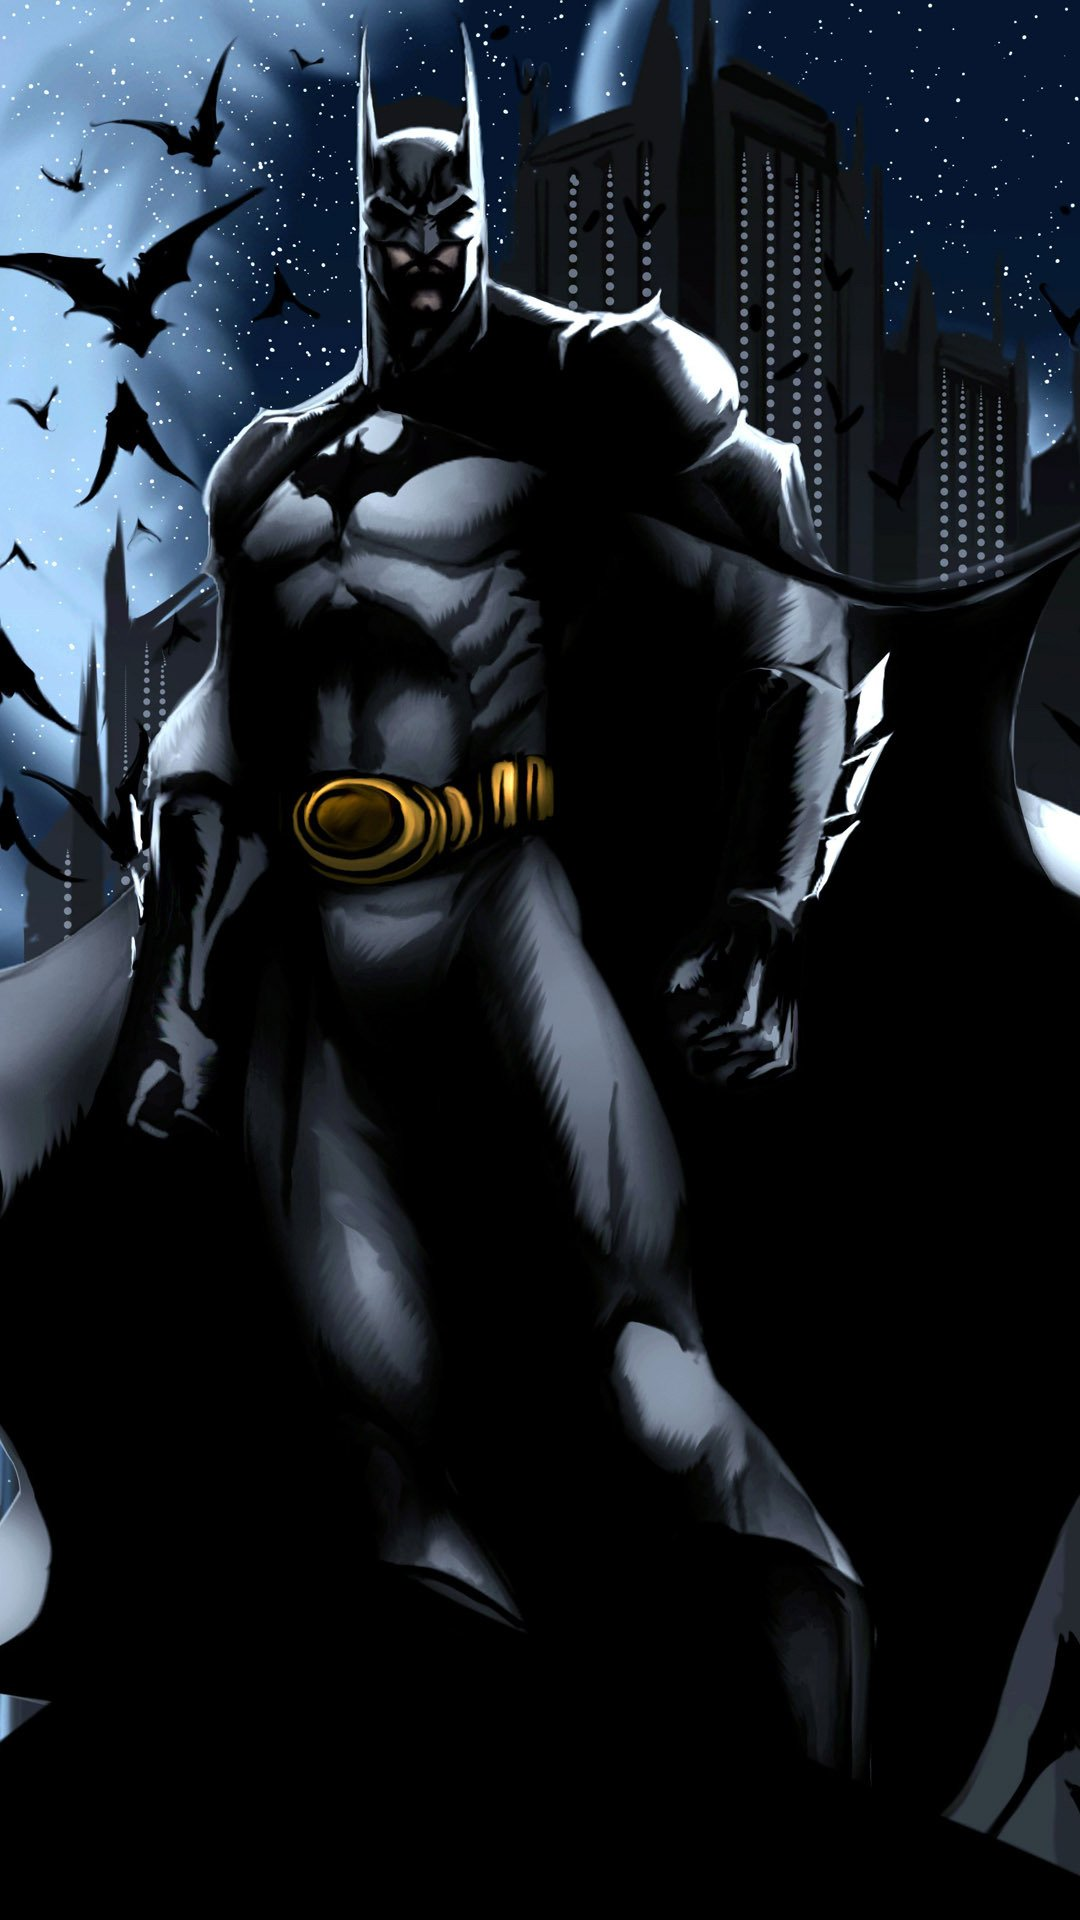 wallpaper batman mobile - photo #12